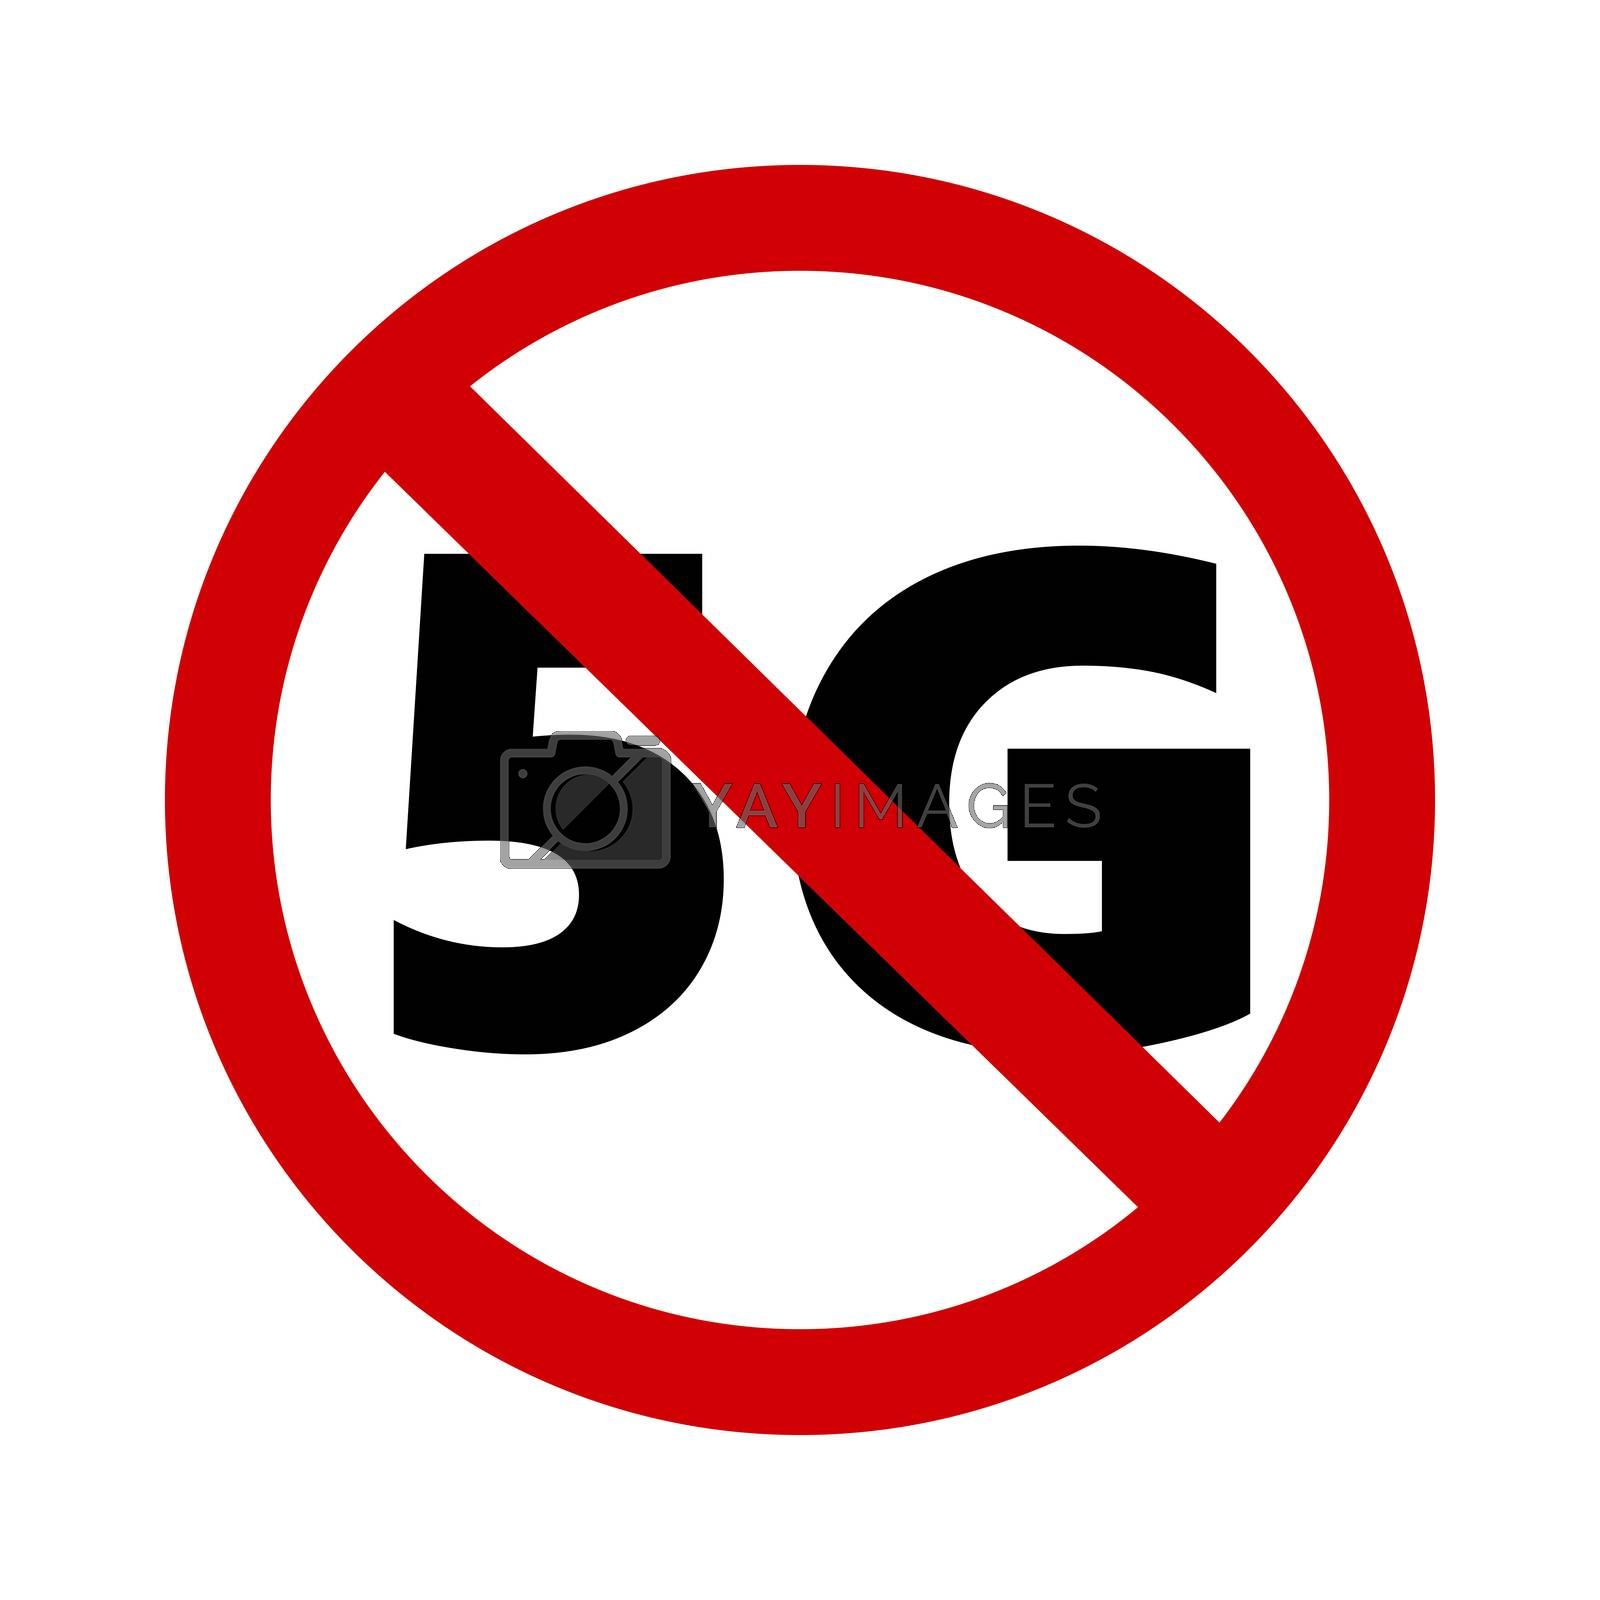 stop 5G sign symbol over white background